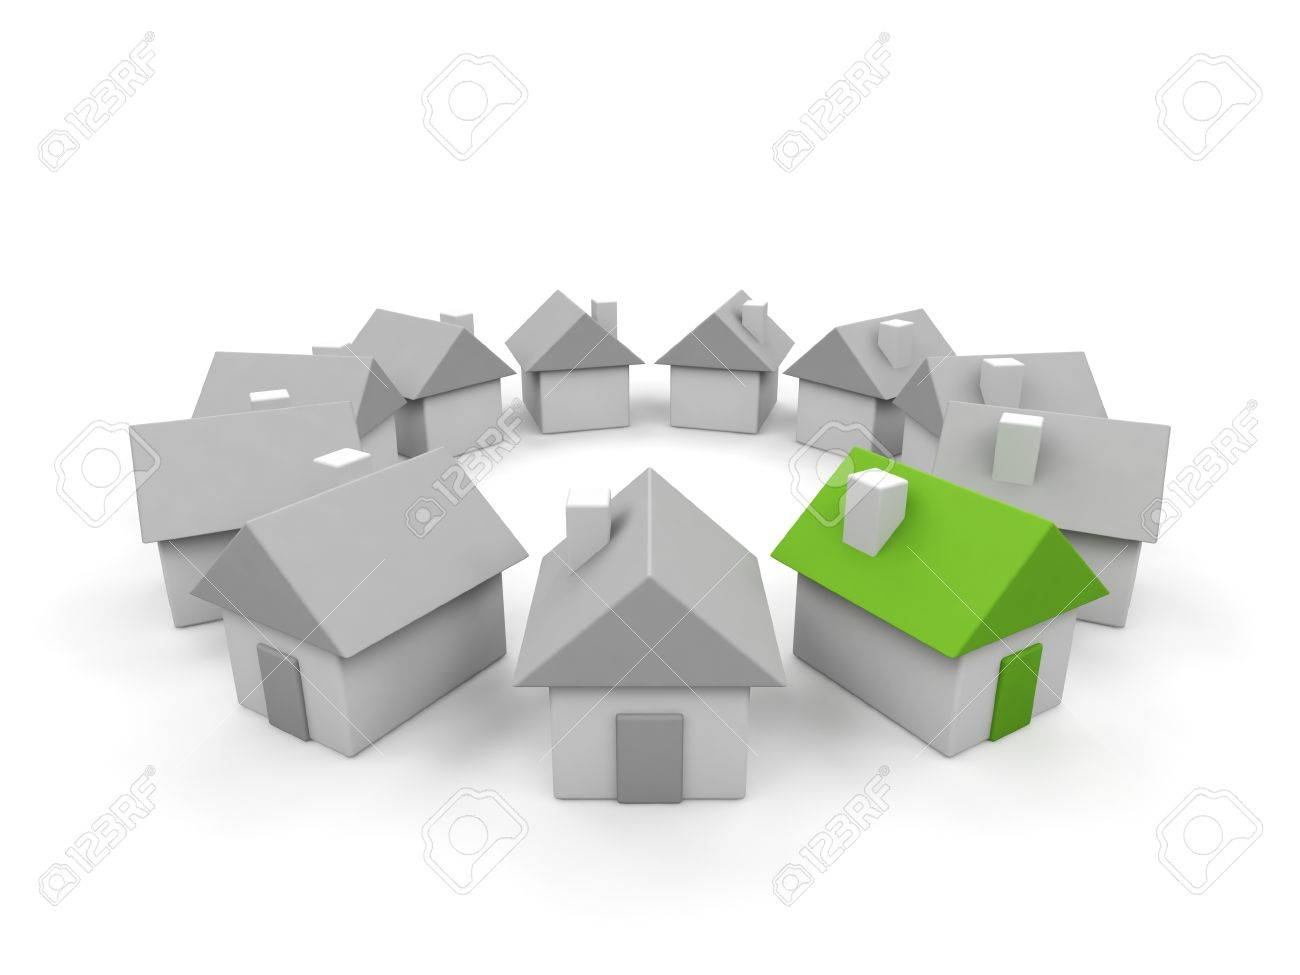 Houses - 3d render illustration on white background. Stock Illustration - 15563618